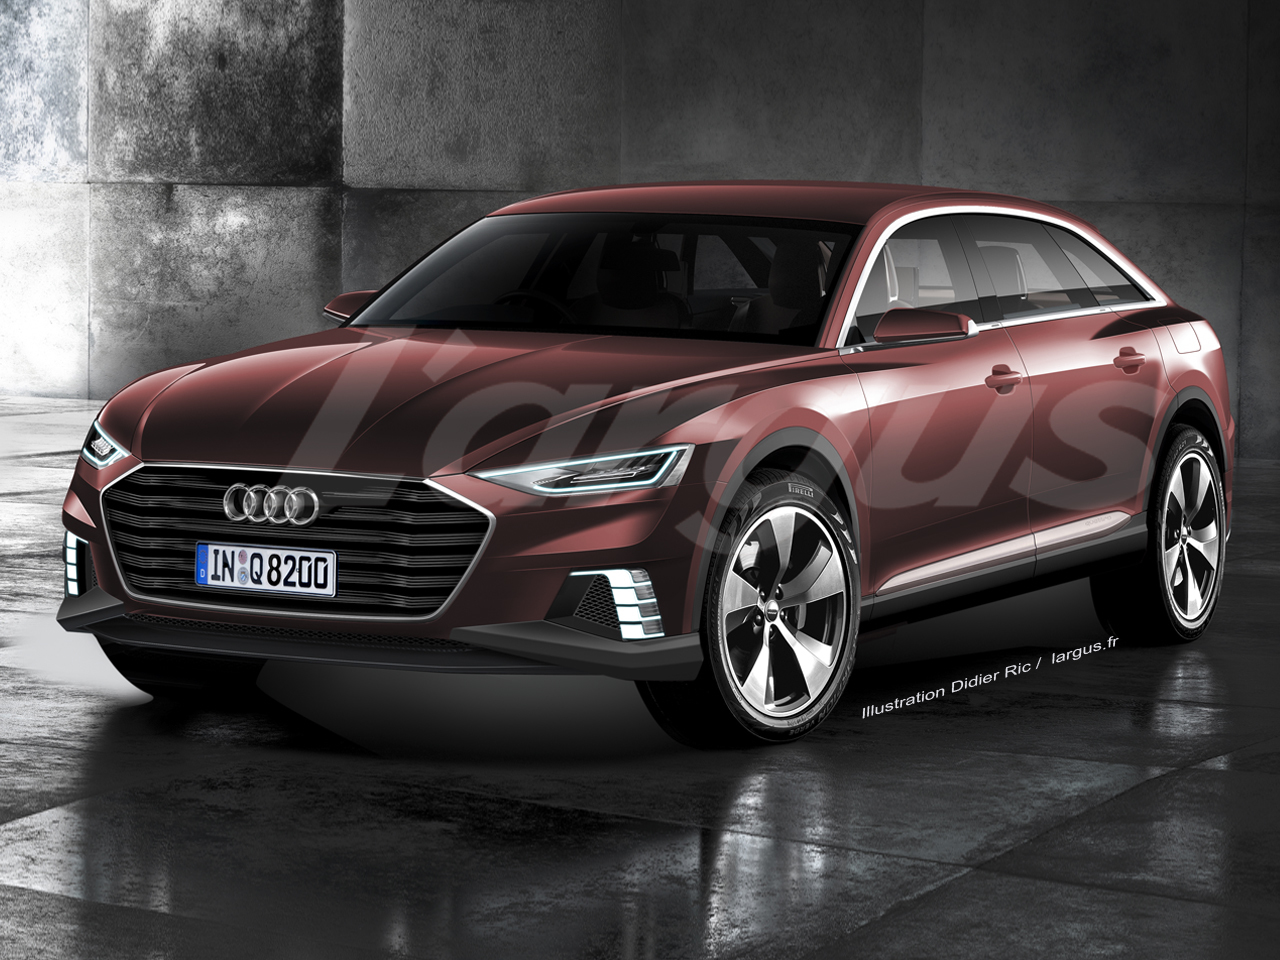 [Scoop] Salon de Shanghai 2015 : Audi prologue allroad ...